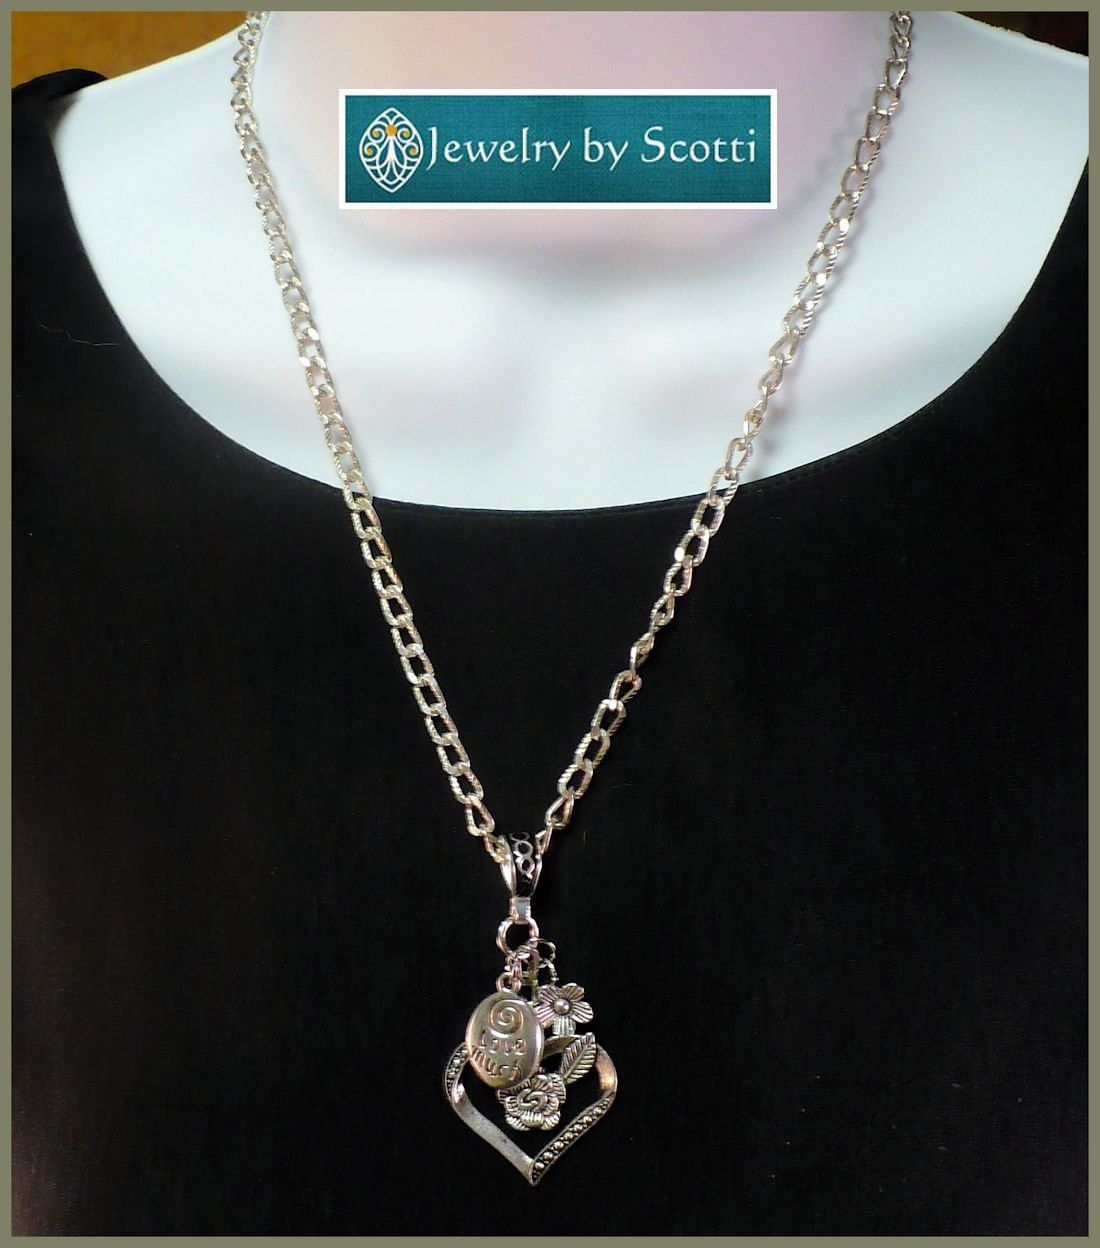 Silver chain pendant necklace large heart charm love much laugh large silver heart charm chain necklace her heart necklace her flower necklace her mozeypictures Images